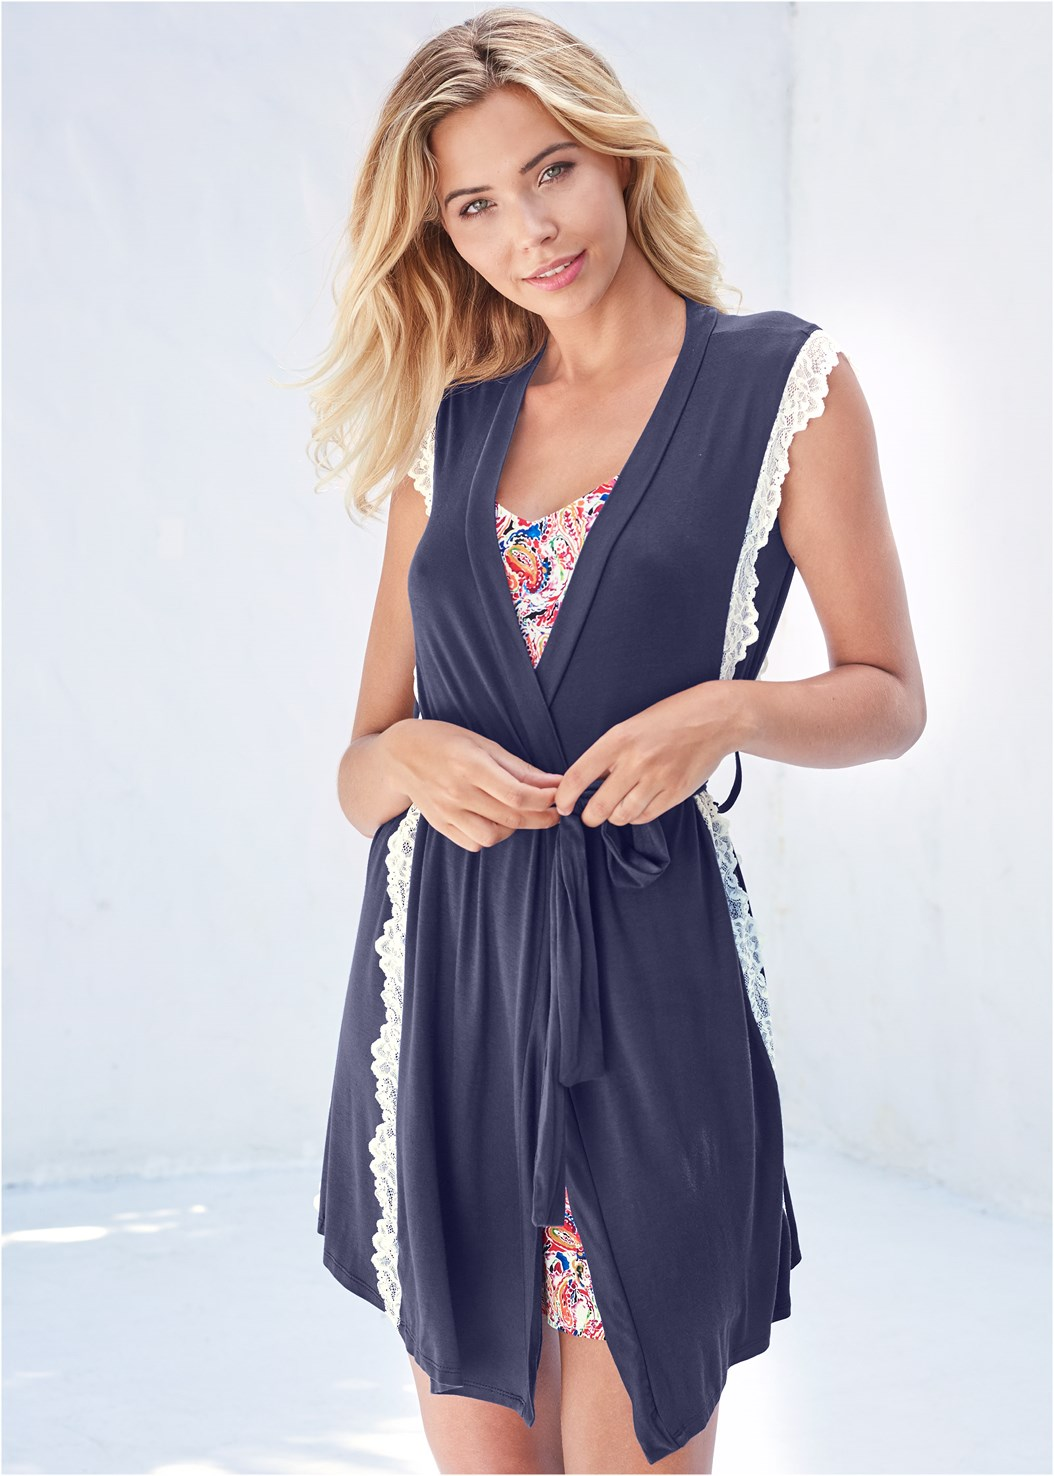 Lace Trim Robe,Lace Embroidered Chemise